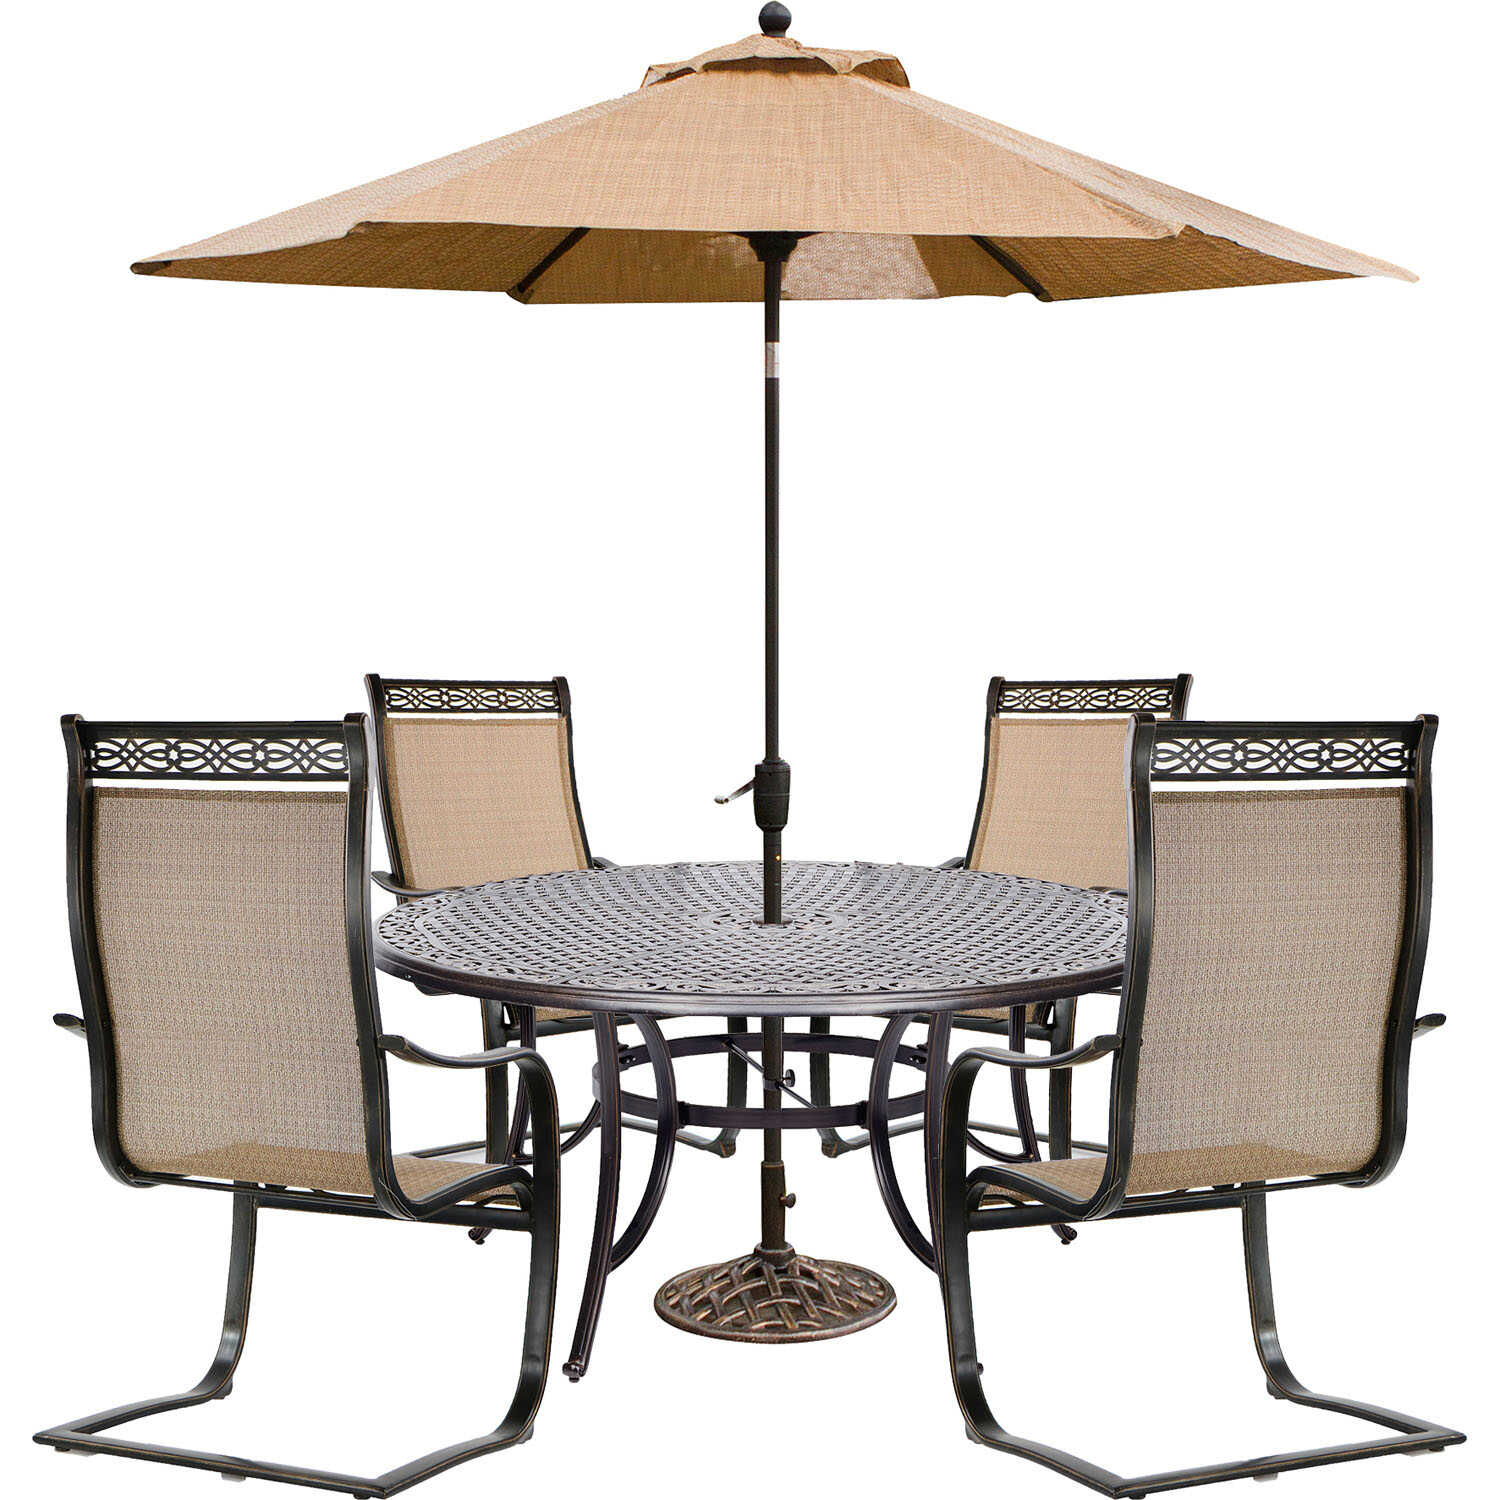 Hanover  6 pc. Brown  Aluminum  Round Table with Umbrella  Patio Set